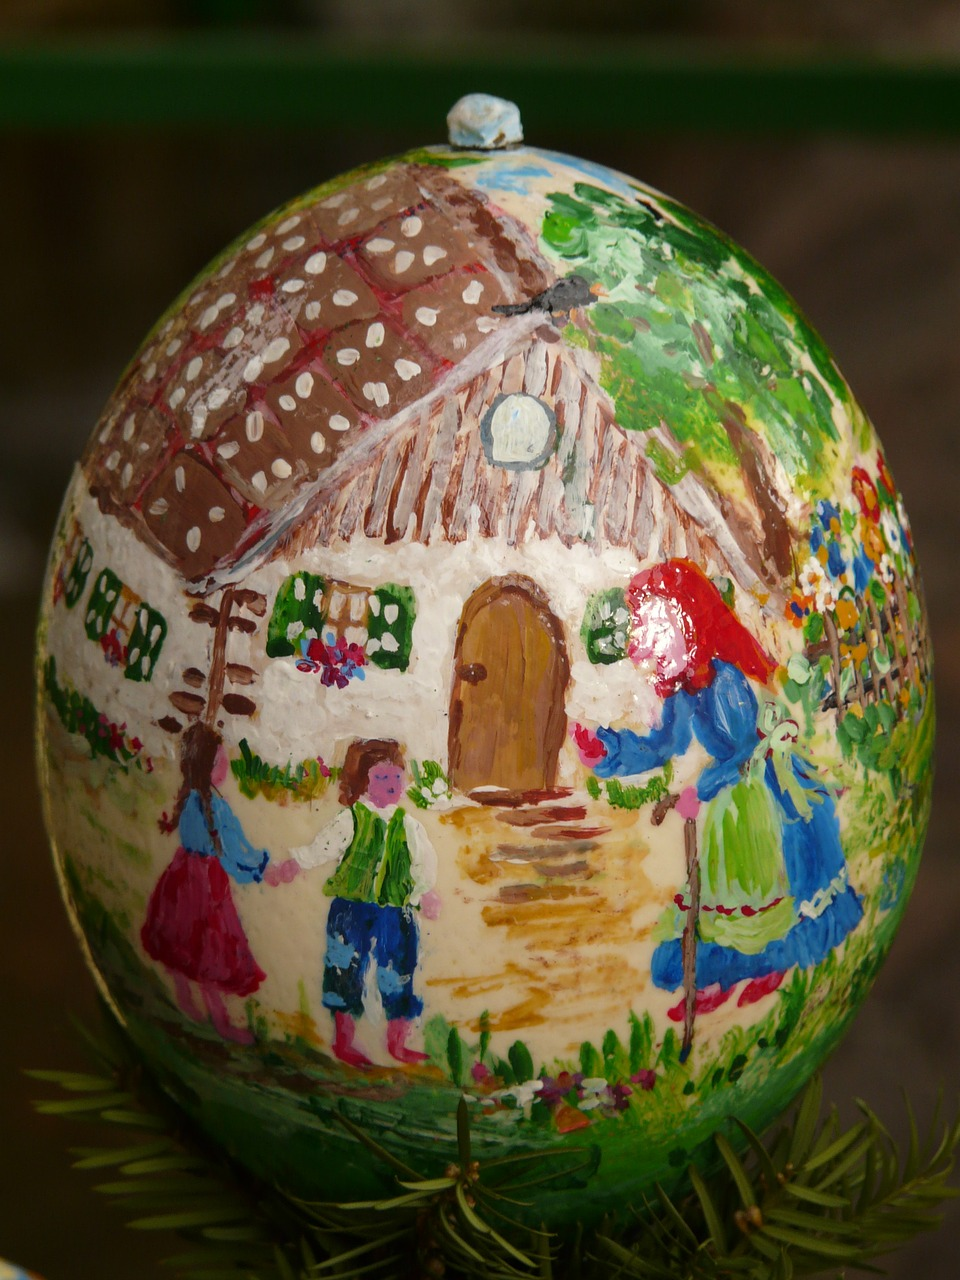 easter egg,easter,paint,easter egg painting,easter eggs,egg,painting,art,color,colorful,hansel and gretel,the witch,free pictures, free photos, free images, royalty free, free illustrations, public domain